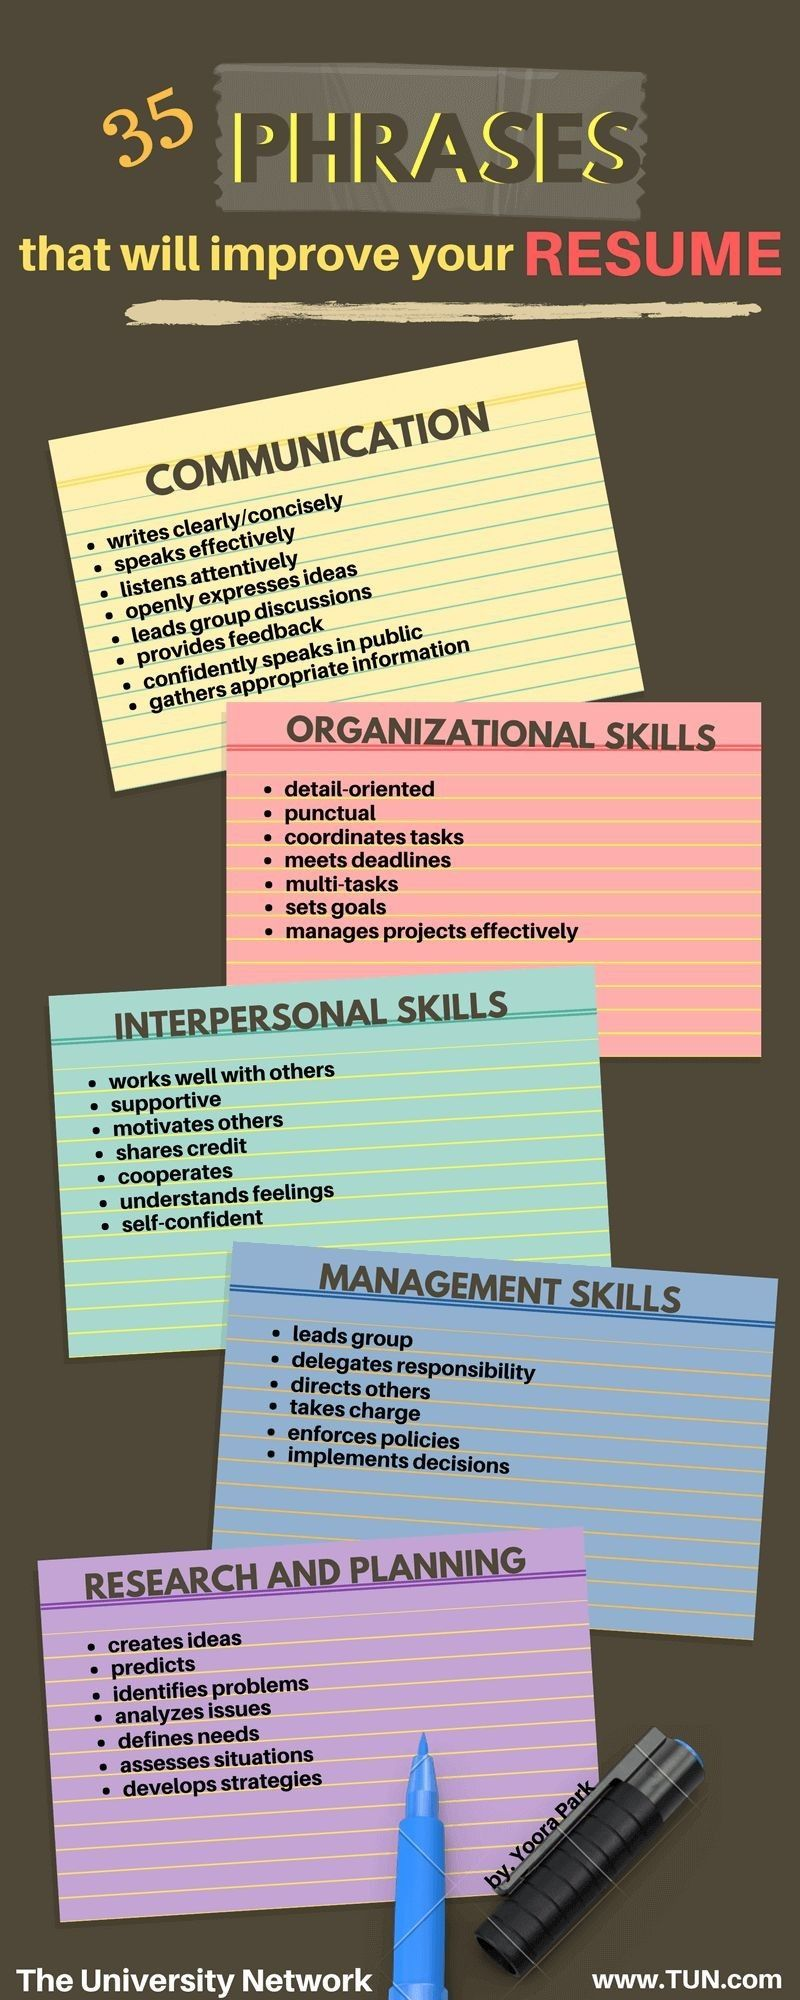 Pin by THERESA HOLLEY on job prep in 2020 Job help